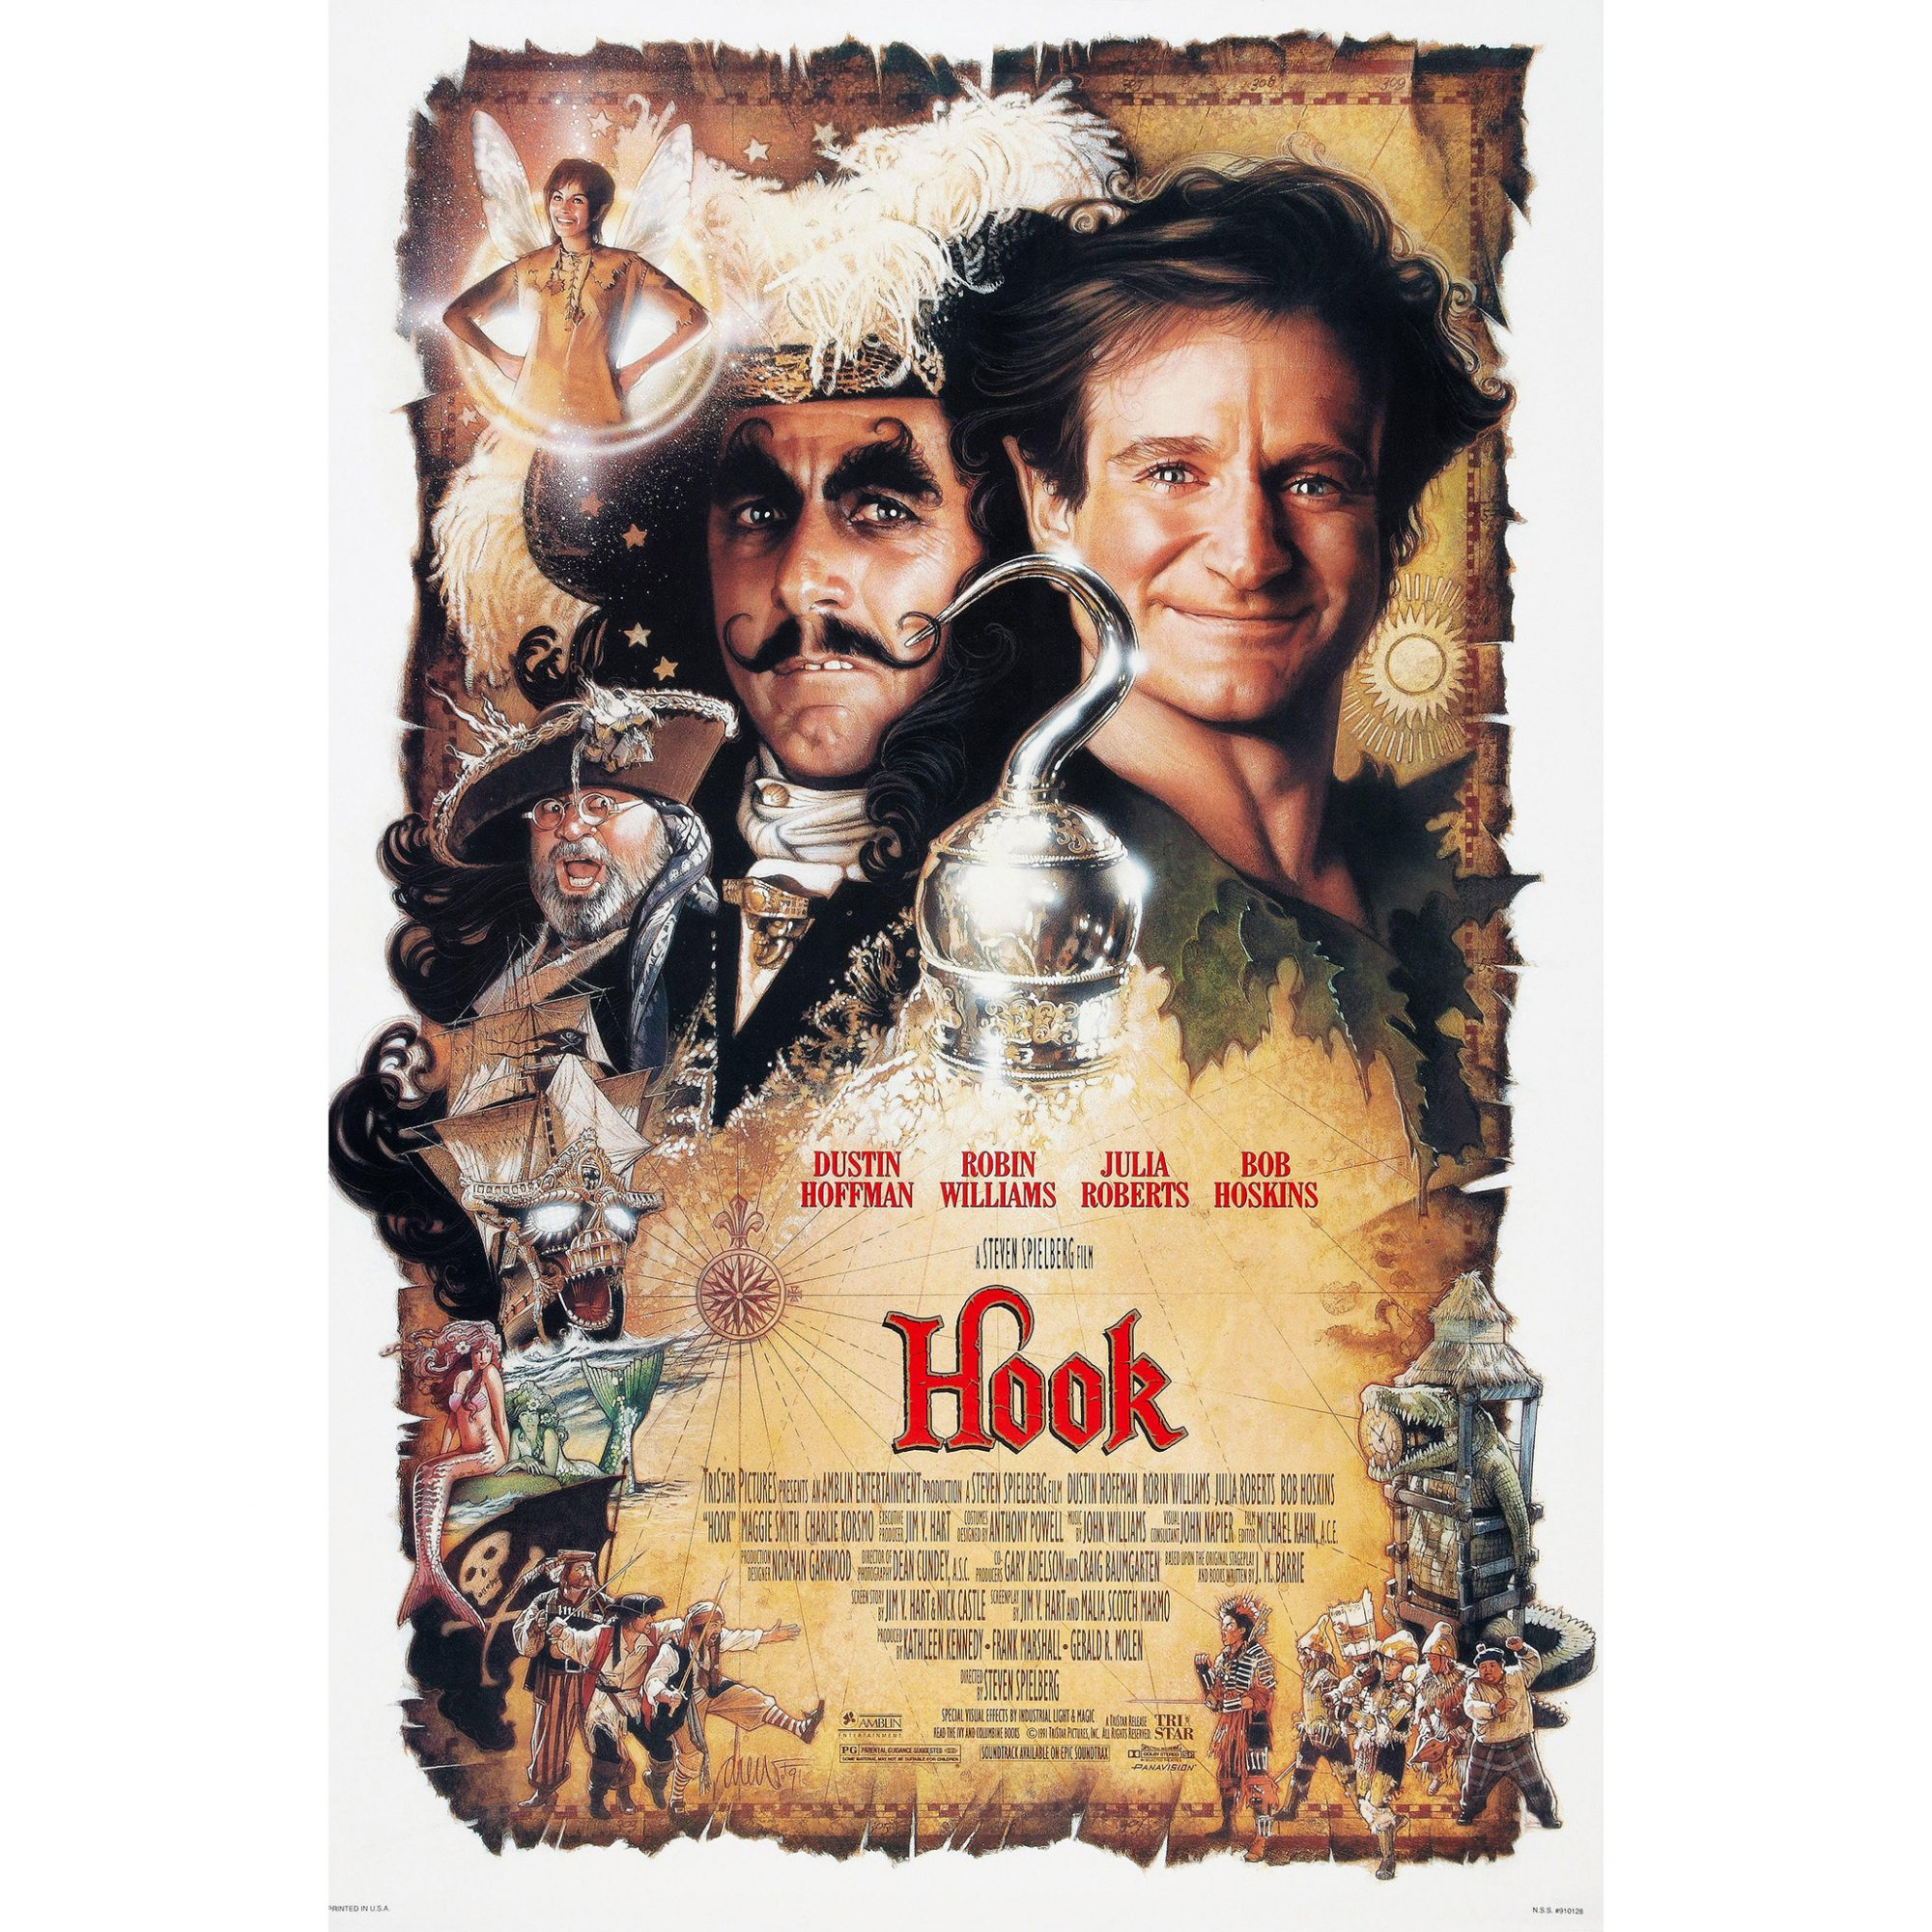 FWX 9 EXTREMELY MESSY MOVIE FOOD FIGHTS HOOK POSTER